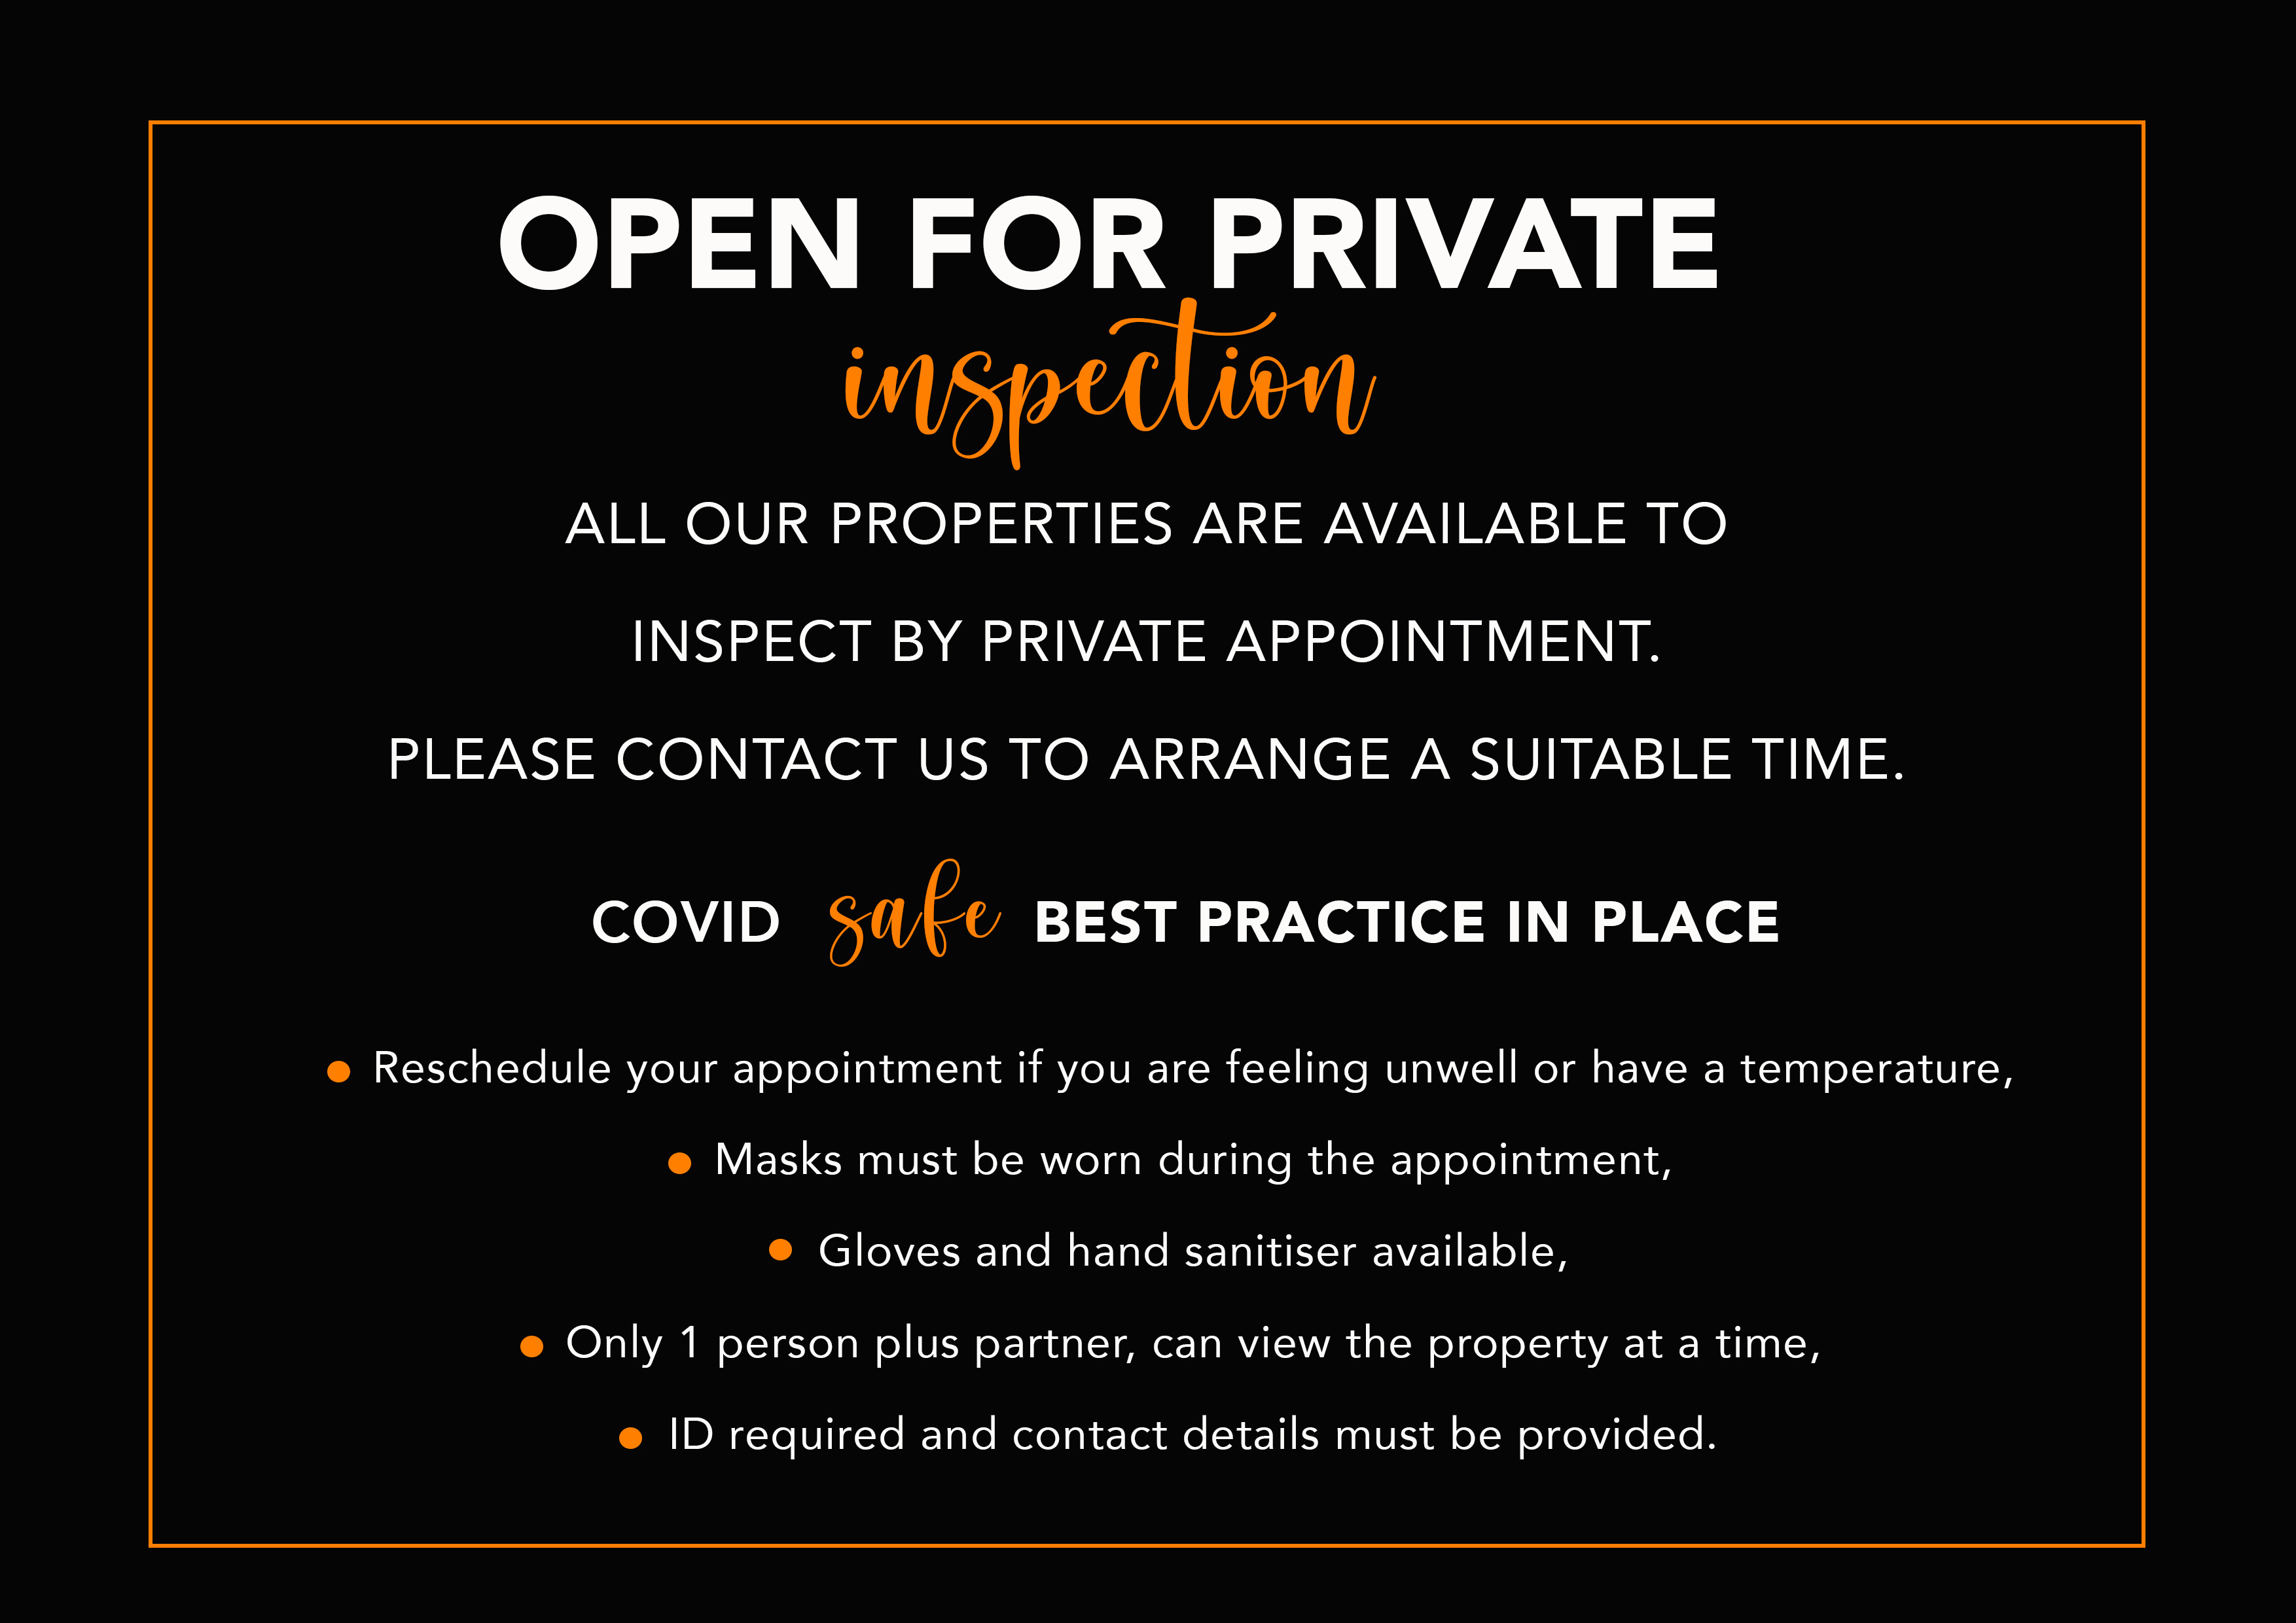 USE private inspection slide